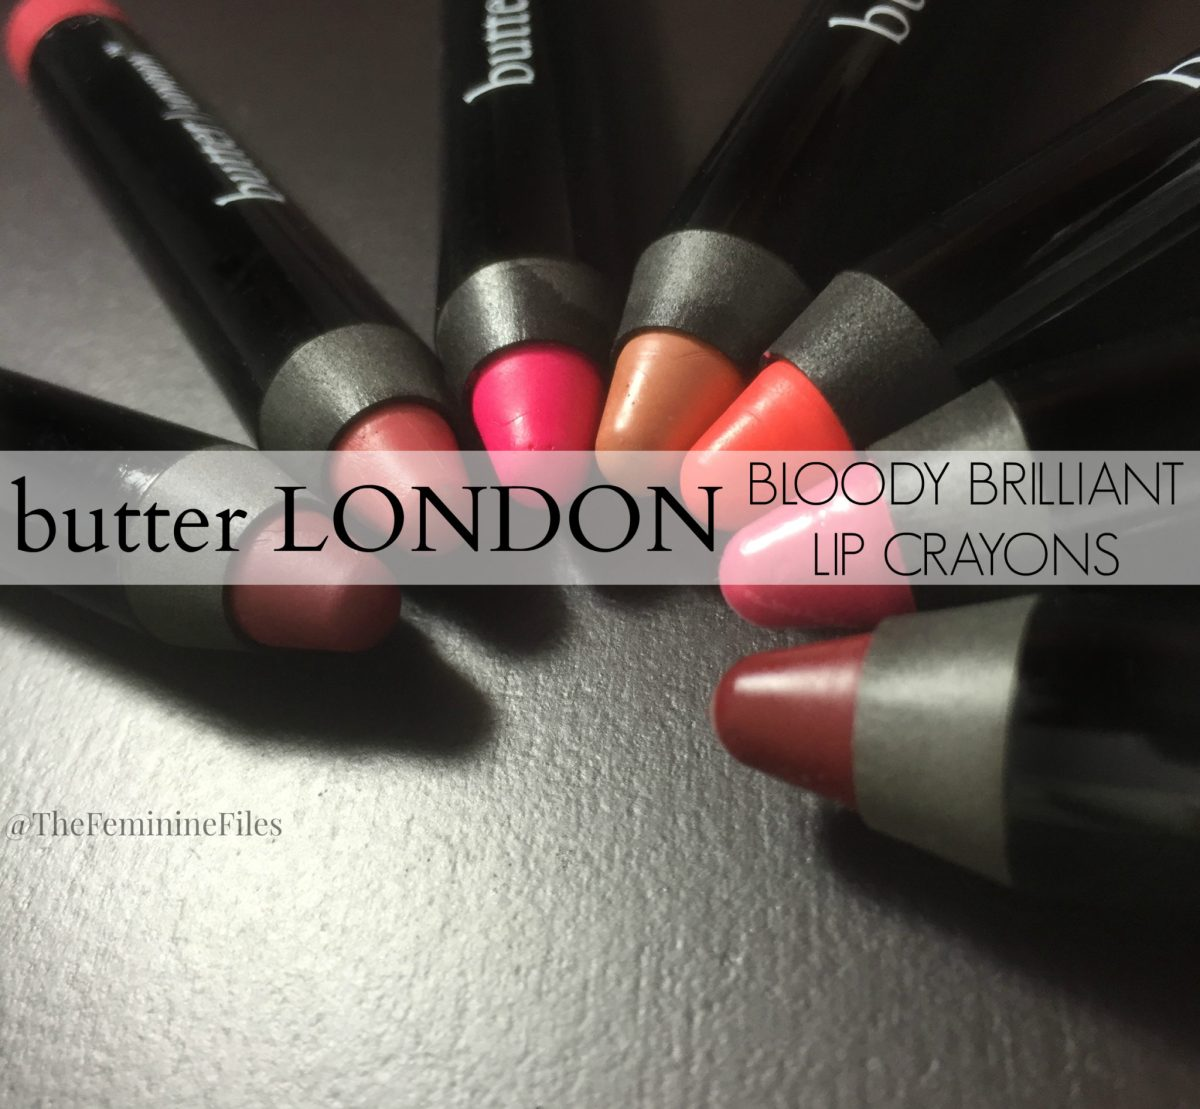 butter London Bloody Brilliant Lip Crayon's